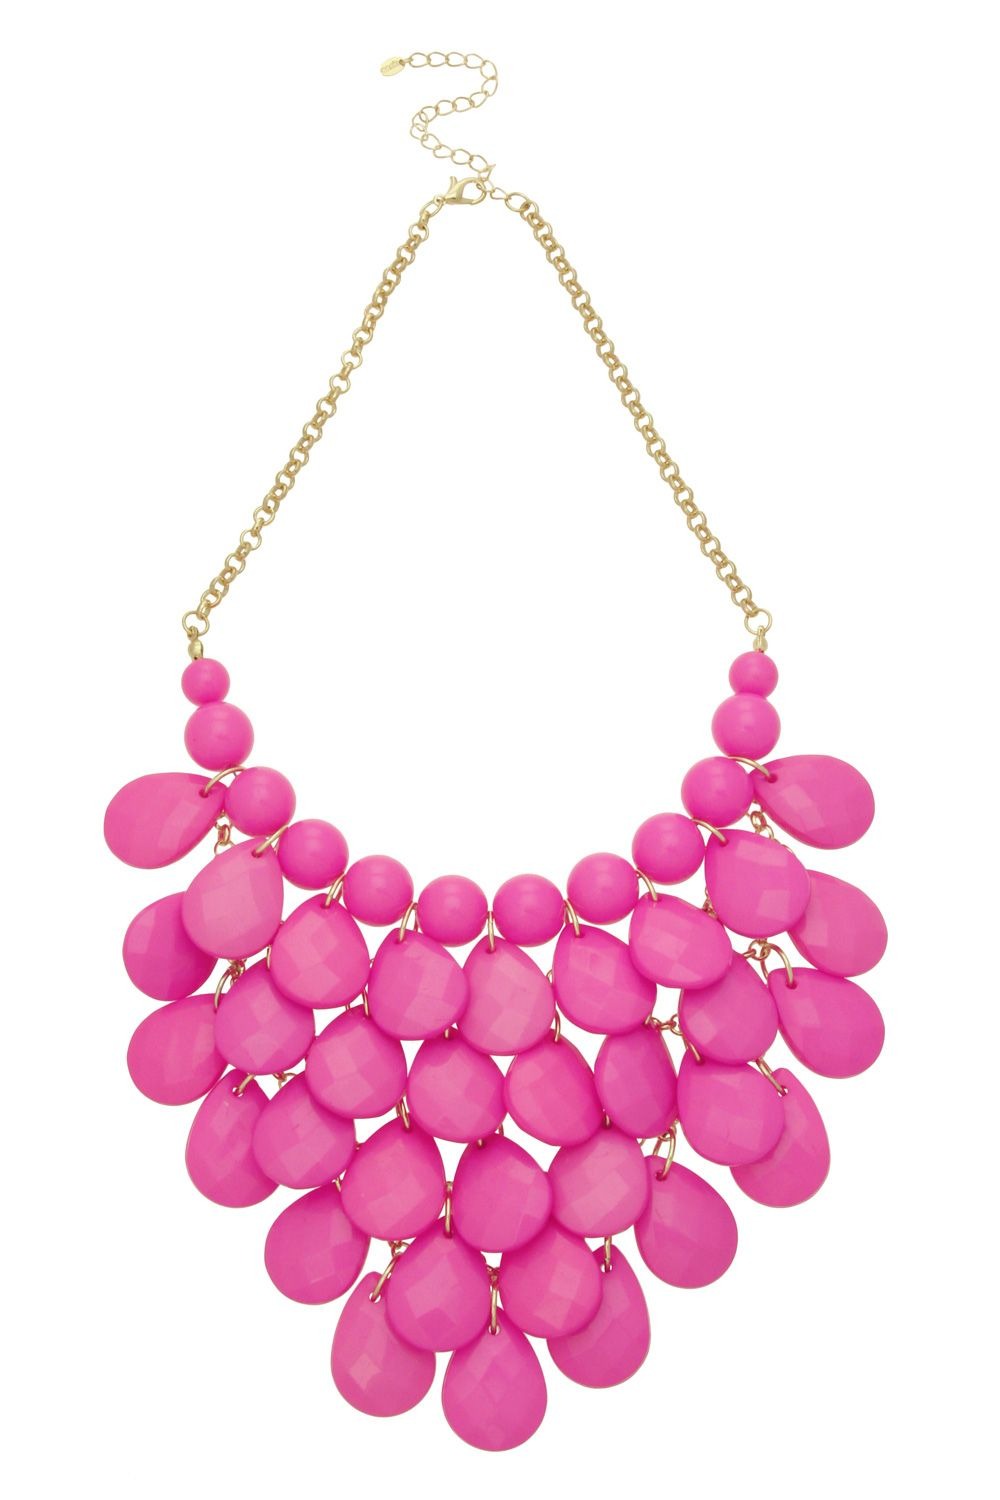 Shakey cascade collar necklace